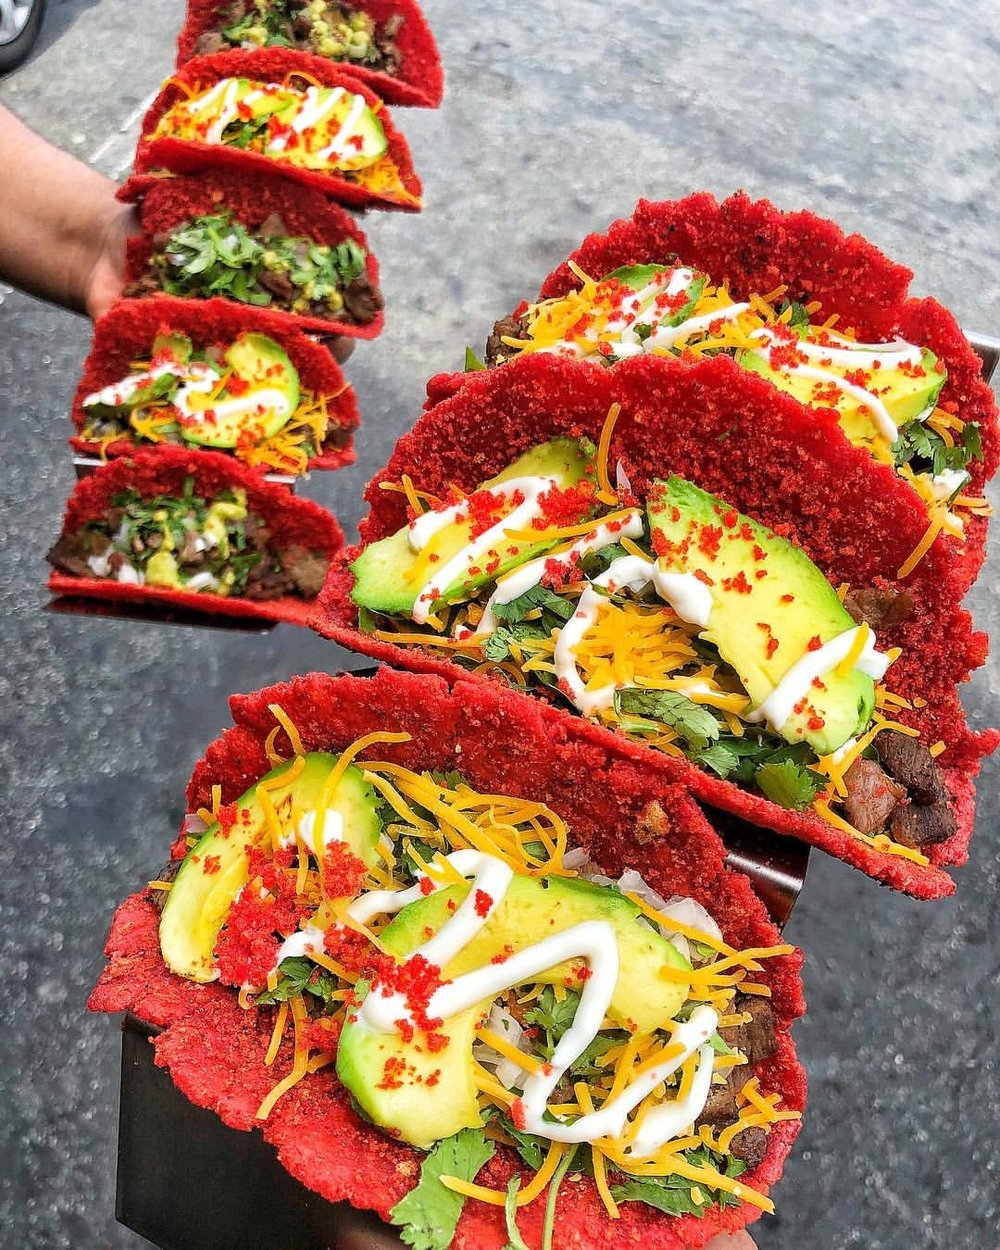 Paraiso Juice Bar - They call themselves the home of the Flaming Hot Cheeto Taco! Their Mexican food with a twist will include a menu of Hot Cheeto Tacos, Cali Hot Cheeto Burritos, Hot Cheeto Elotes, Hot Cheeto Esquites (Mexican street corn salad) and Chicharines (wheat sealed snacks). Bring on the fire 🔥🔥